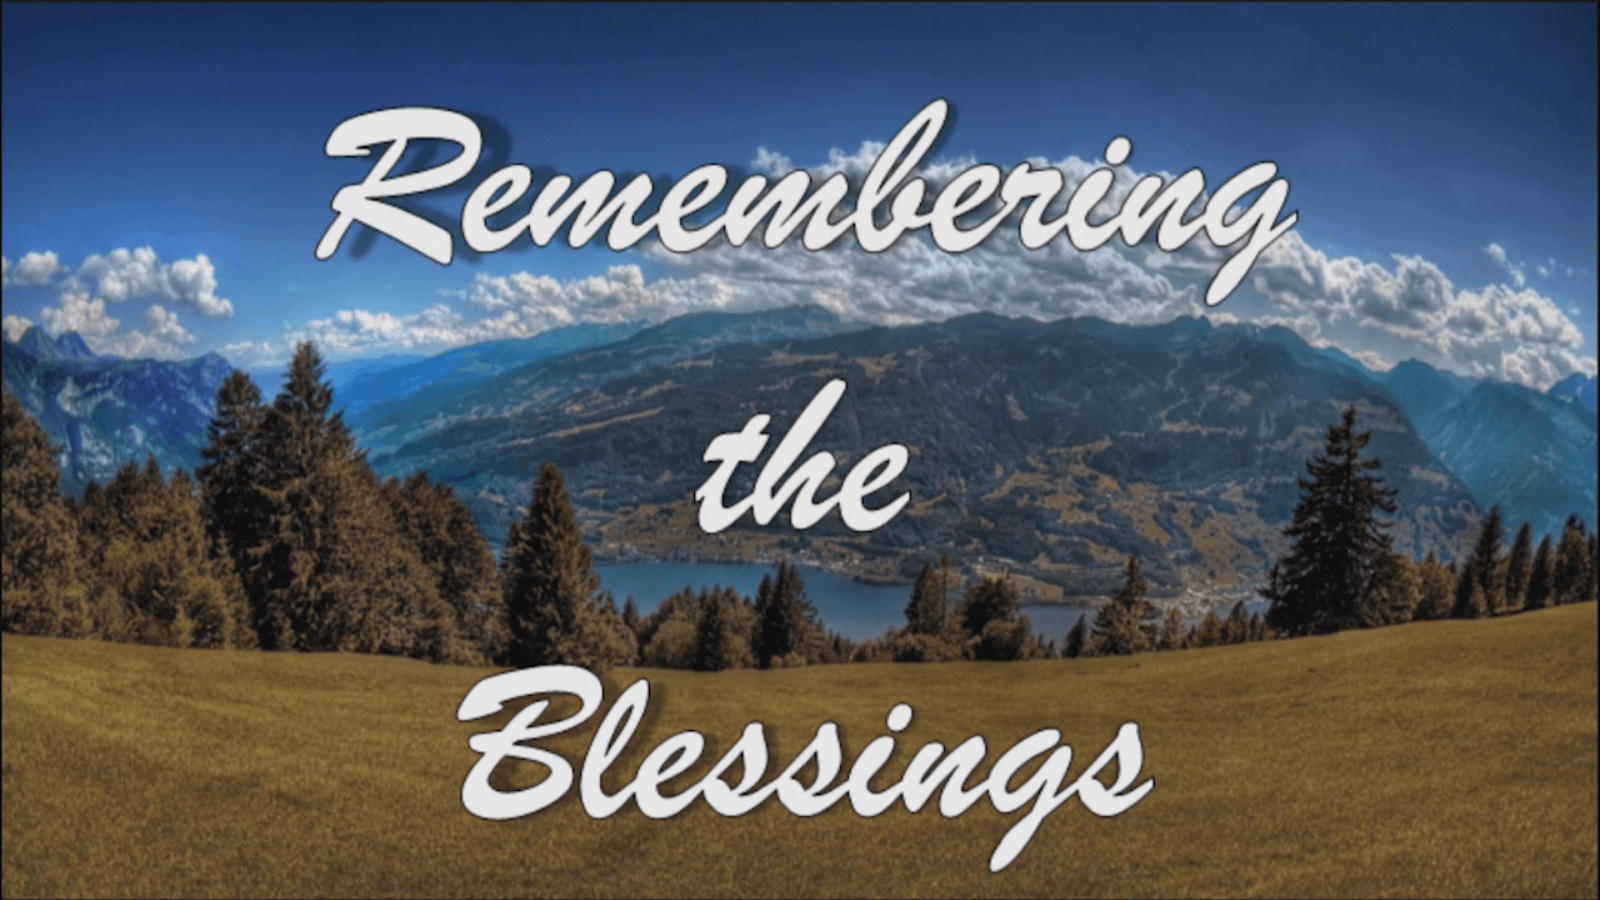 Remembering the Blessings